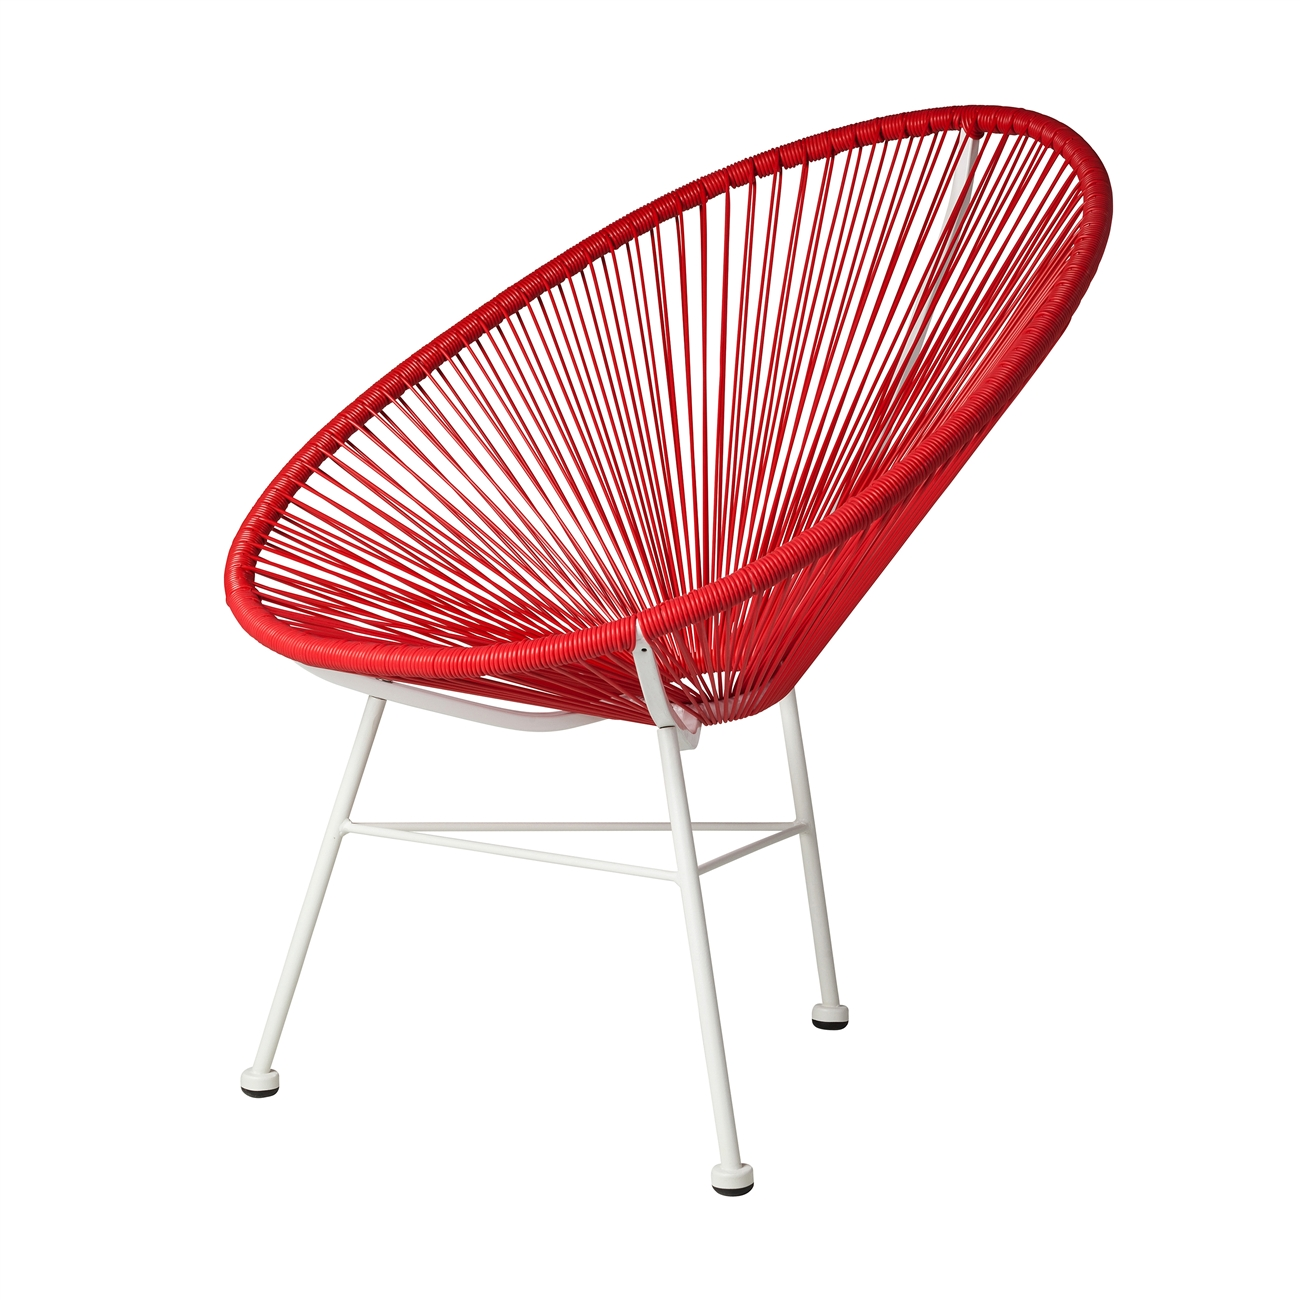 Acapulco chair outdoor - Acapulco Indoor Outdoor Lounge Chair Red Weave On White Frame